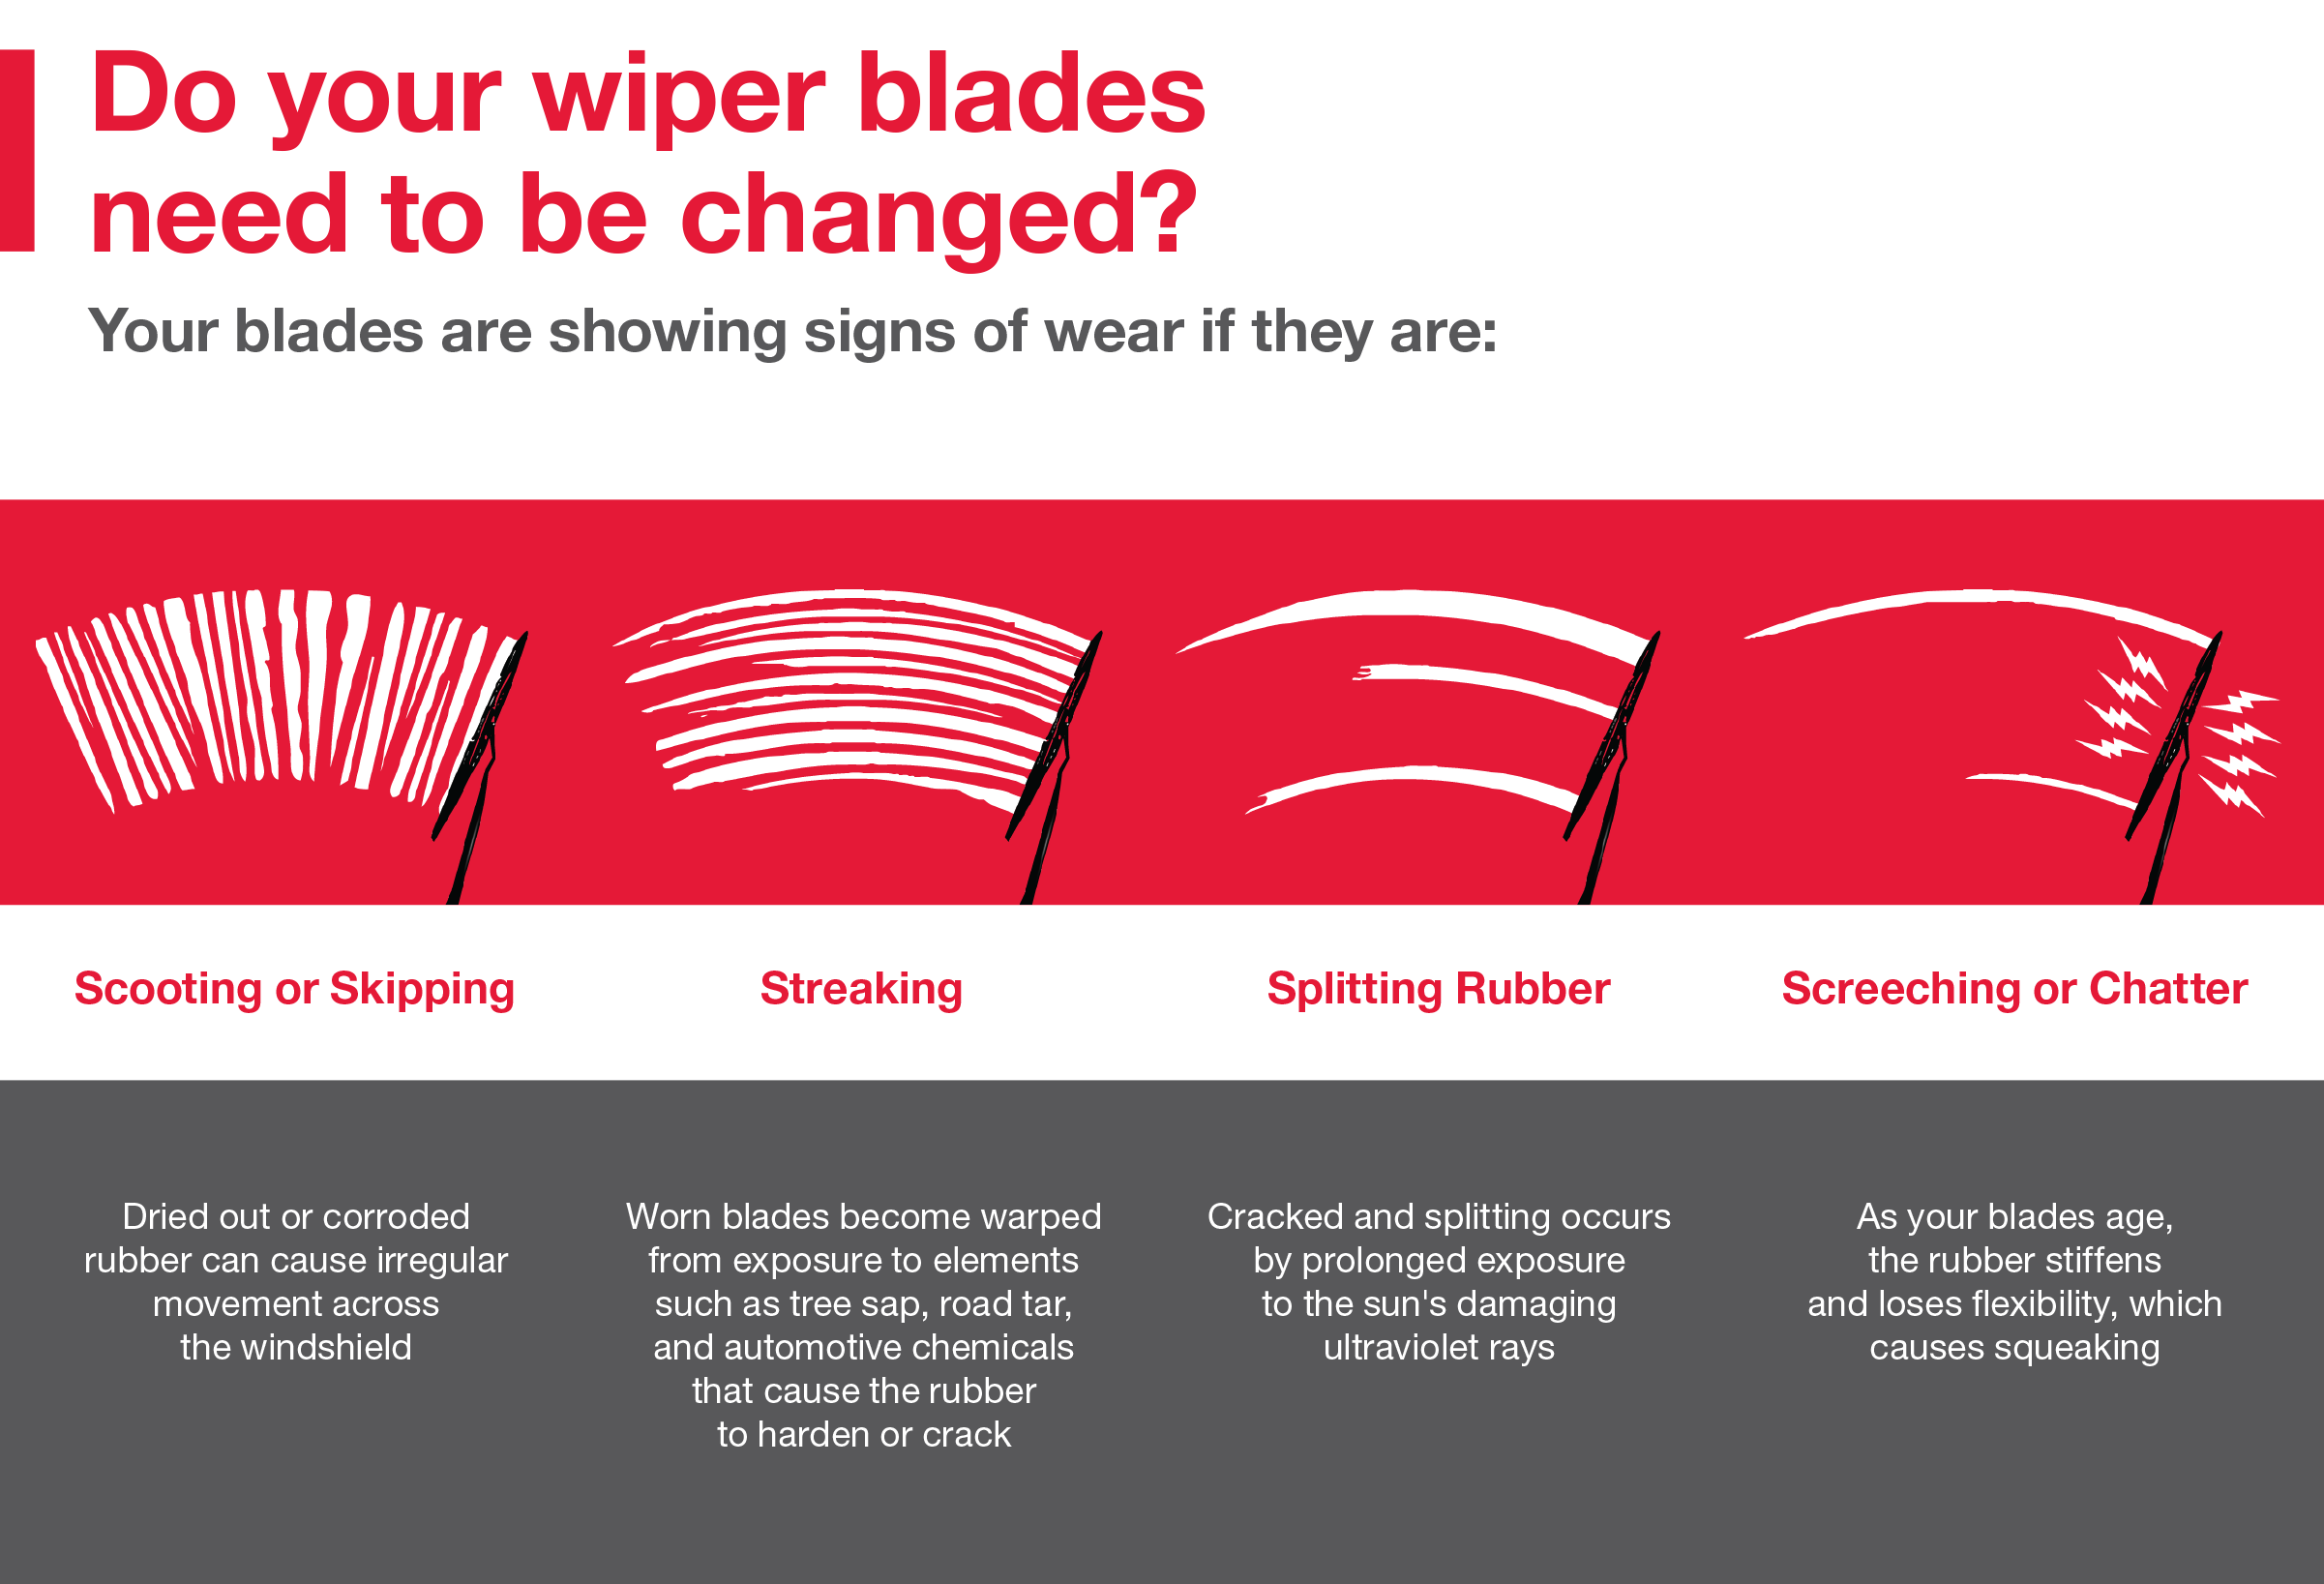 Do your wiper blades need to be changed? Call your local dealer for more info: 844-490-1326